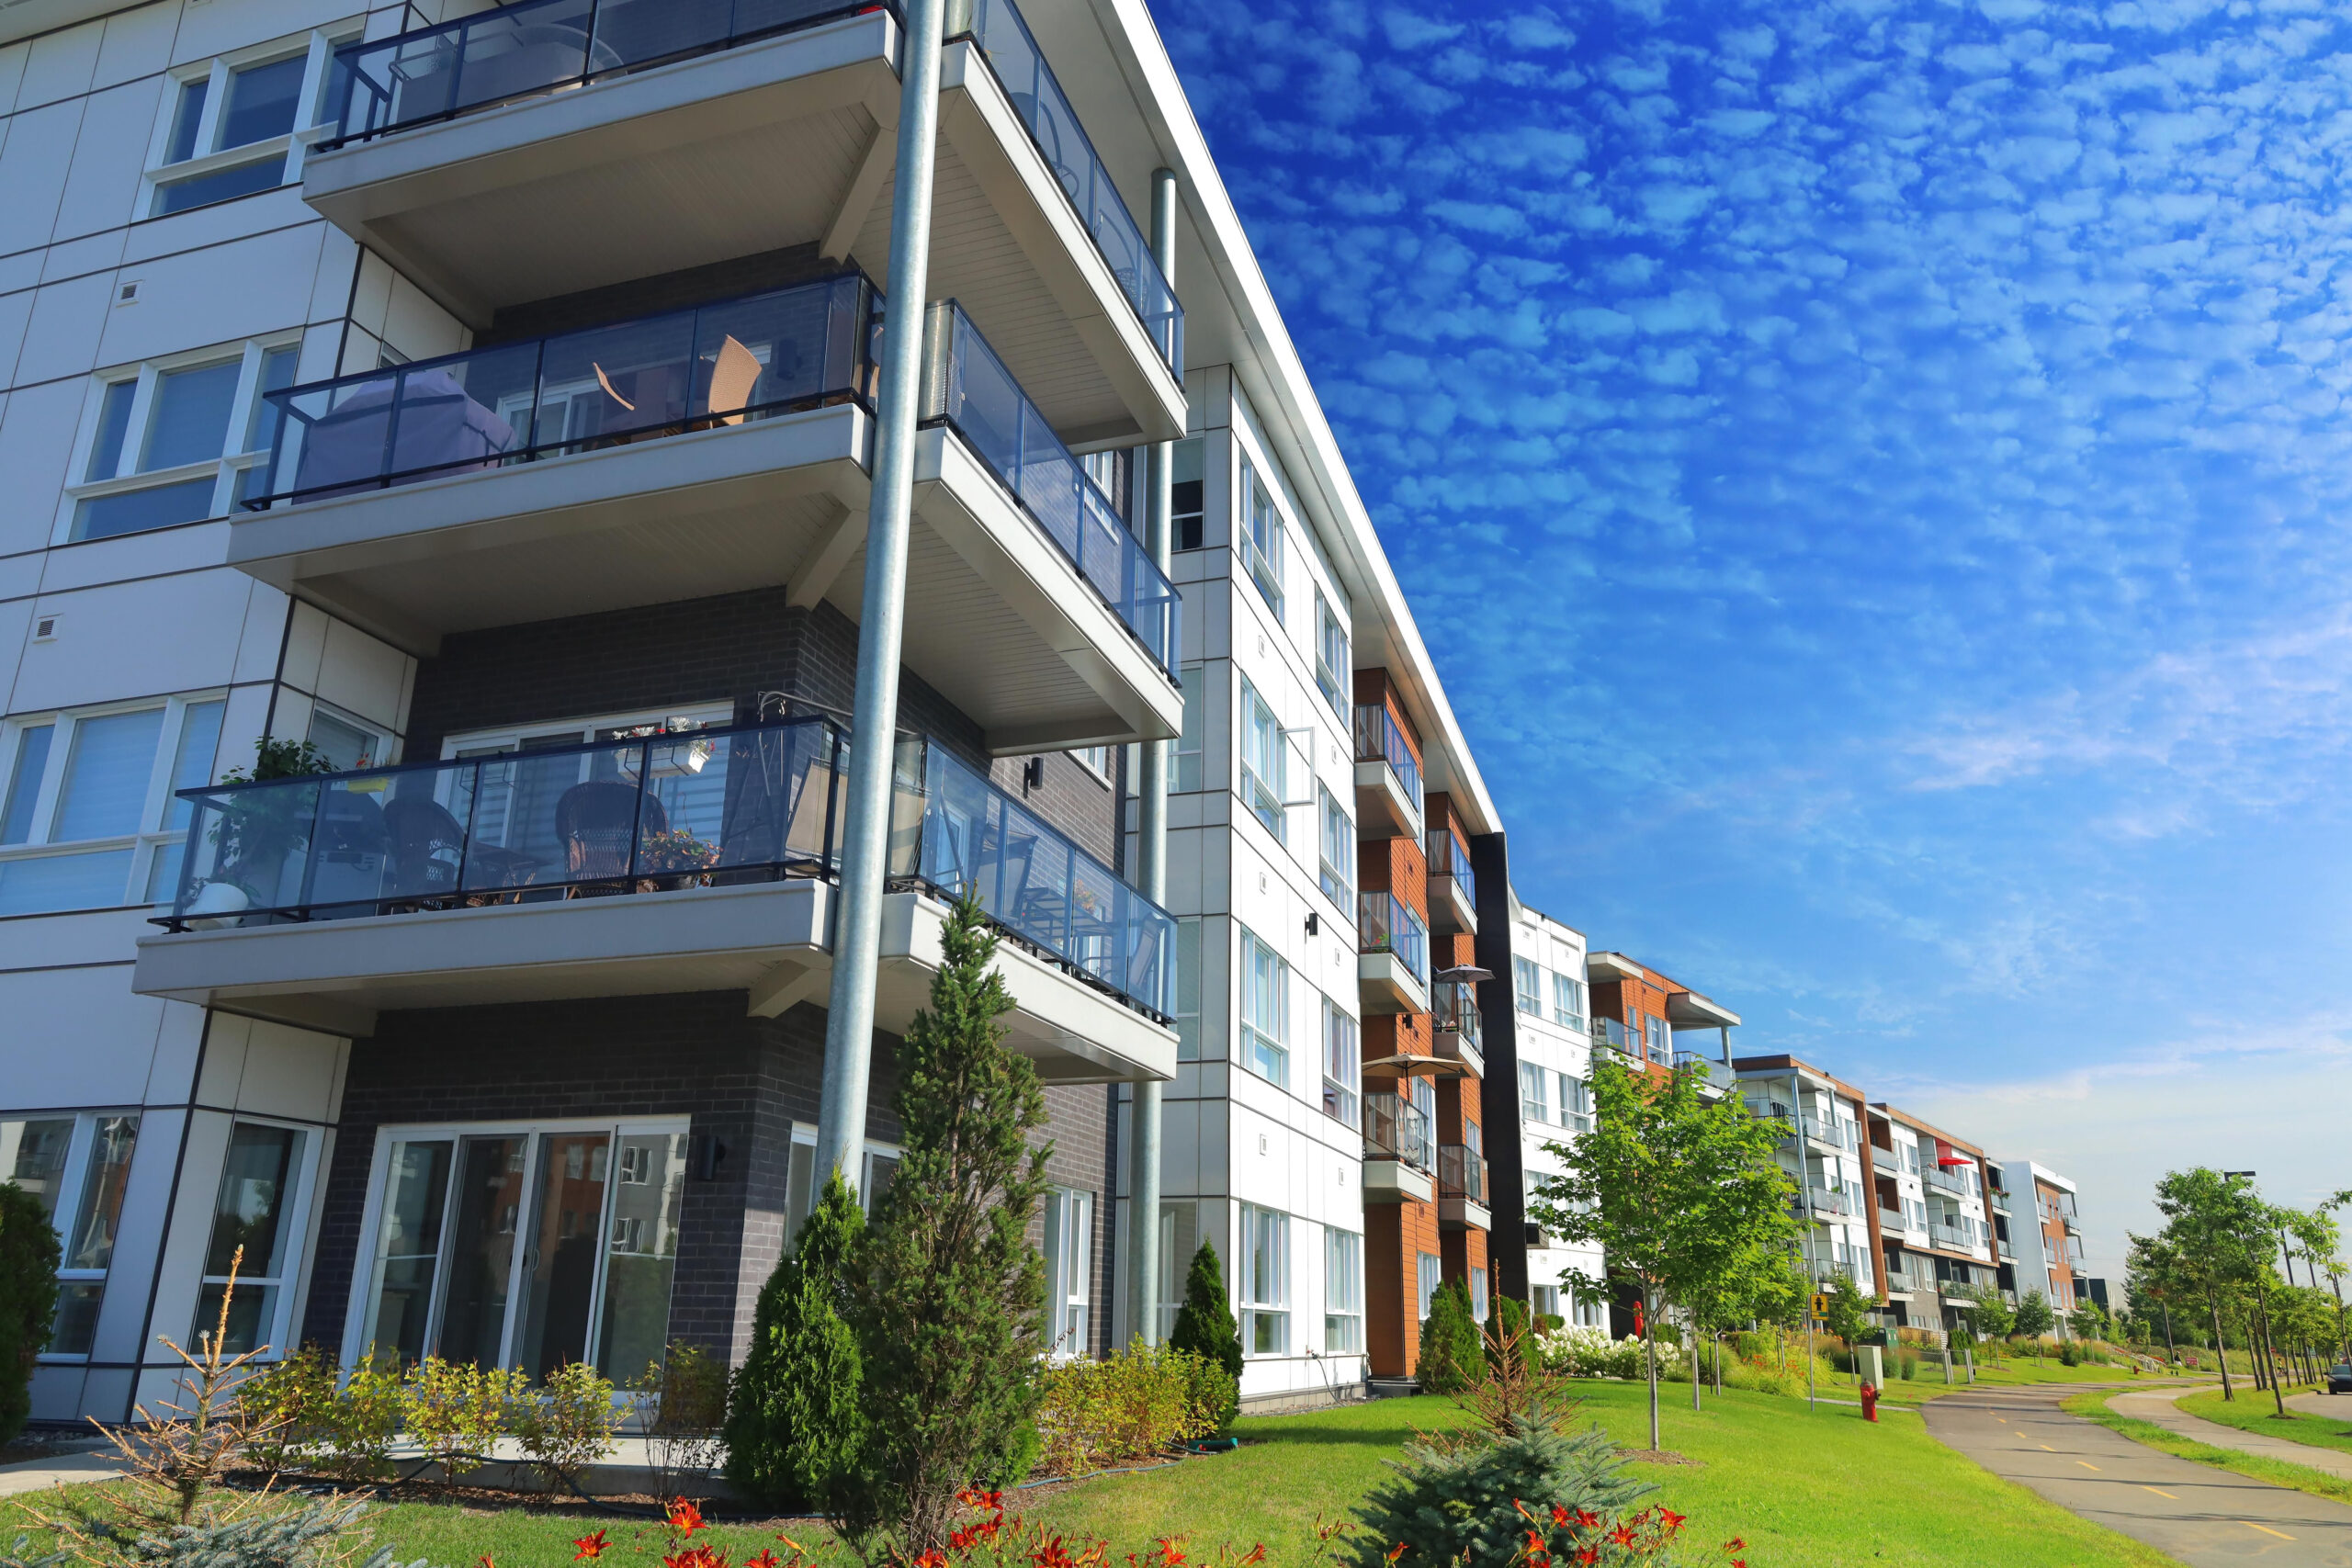 HUD Insured Loans: Mitigating Risk For Medium- To Long-Term Holders Of Multifamily Assets